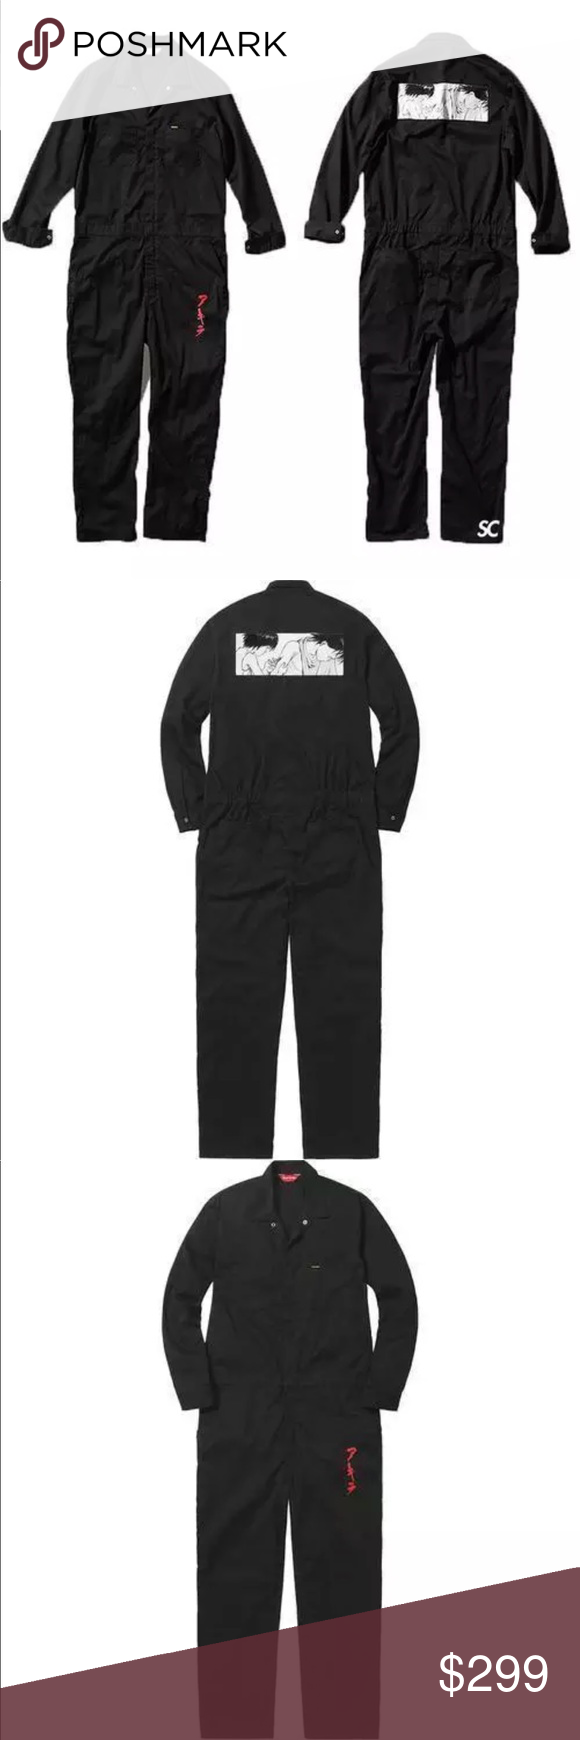 best website 37b7d 5279a SUPREME AKIRA Coveralls Don t miss out on these hard to find SUPREME x AKIRA  Coveralls from the F W 17 collabs! Size L. Black.